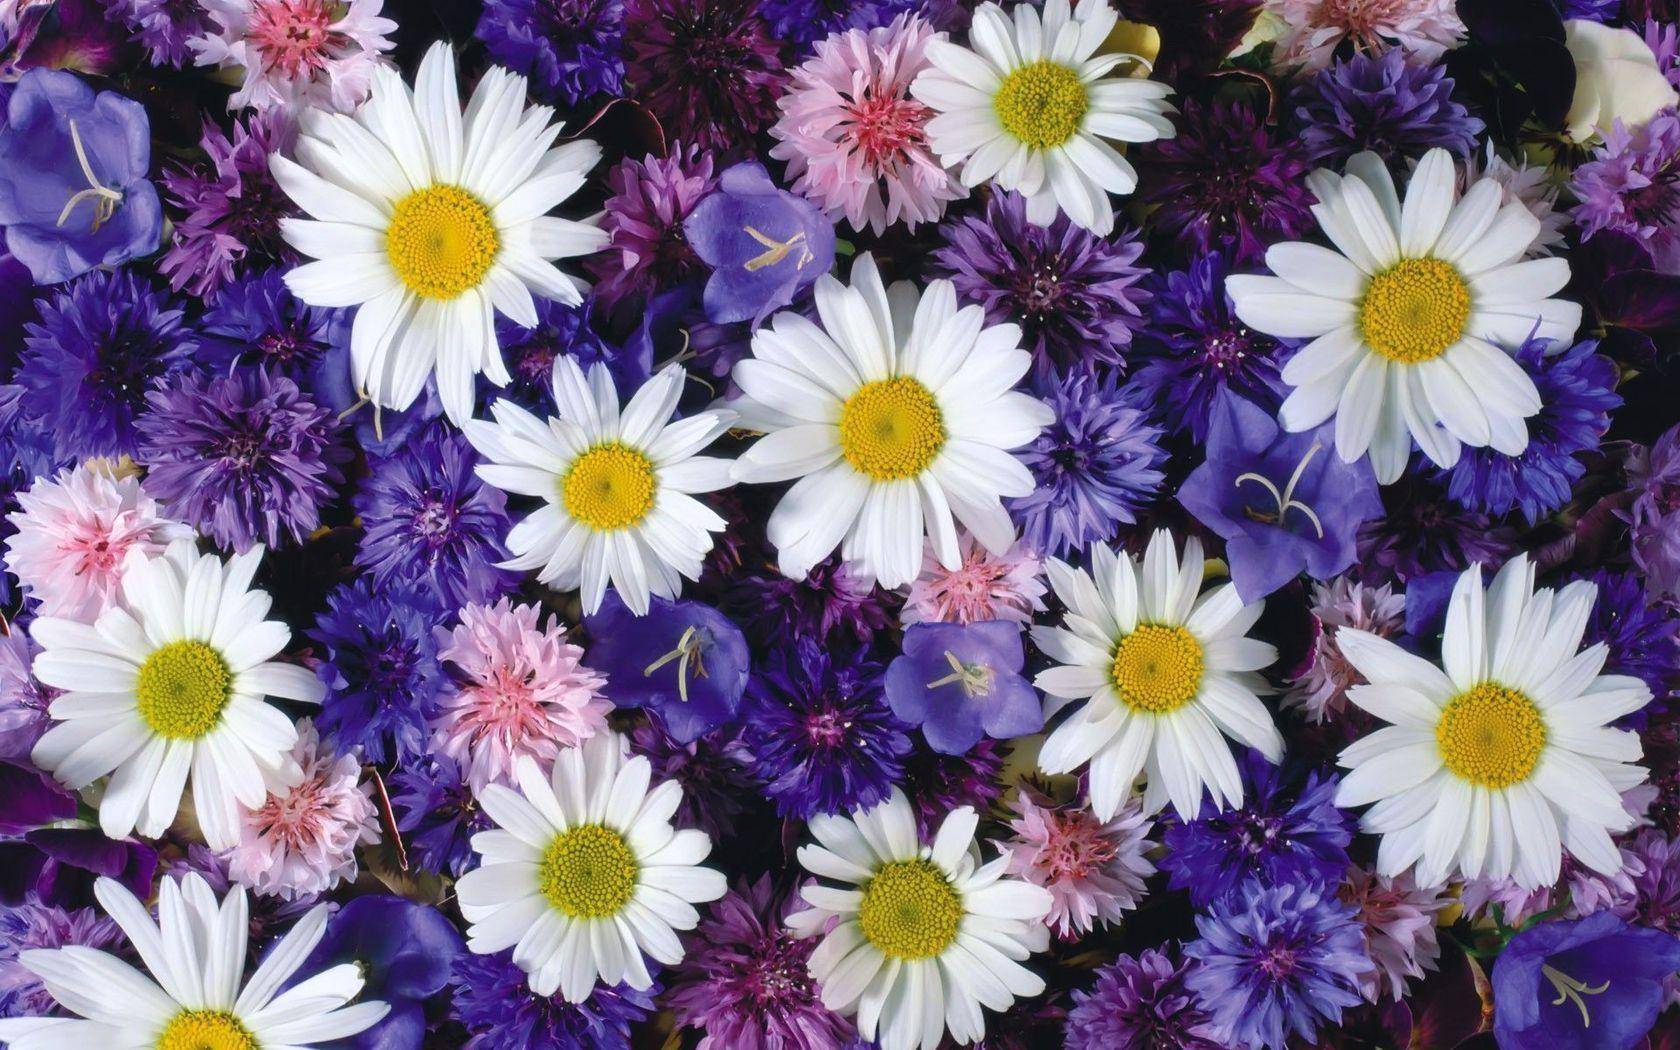 Cornflowers and daisies wallpapers #